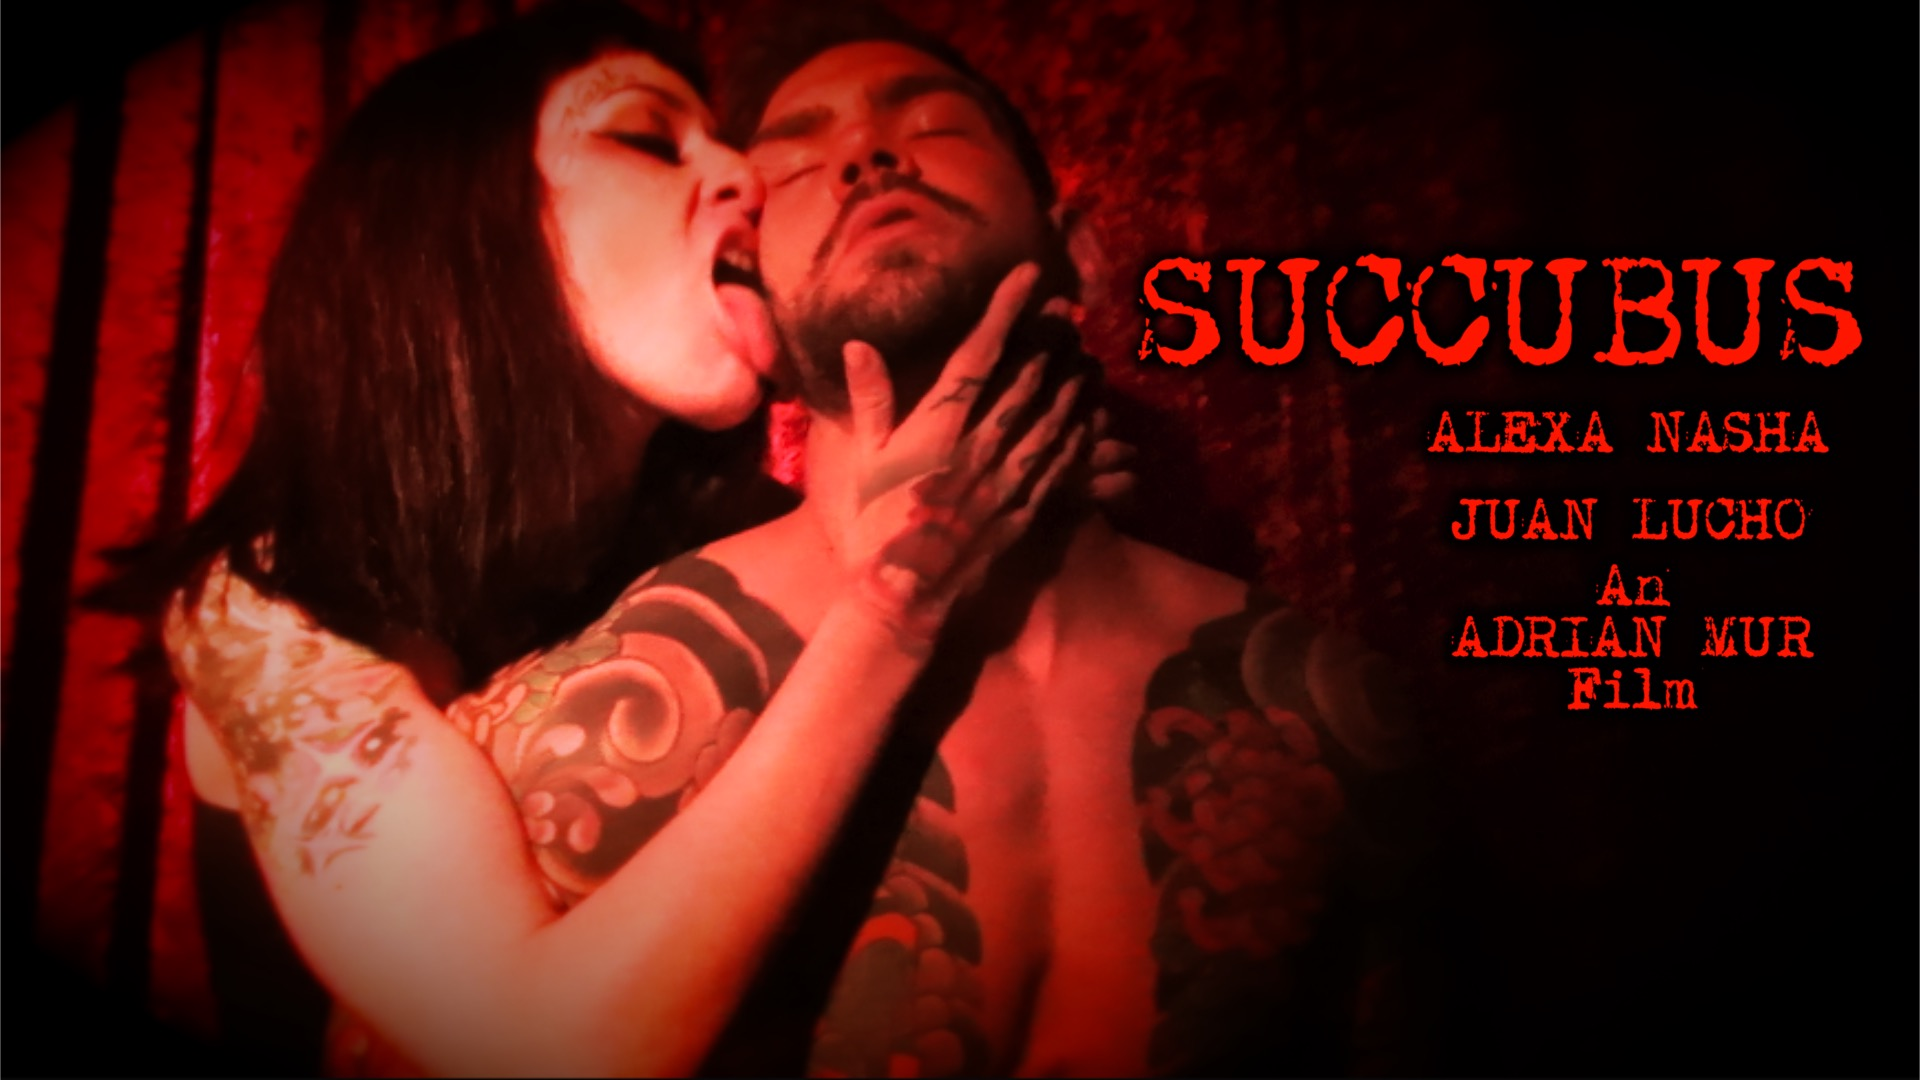 Succubus with Alexa Nasha and Juan Lucho split tongue demon